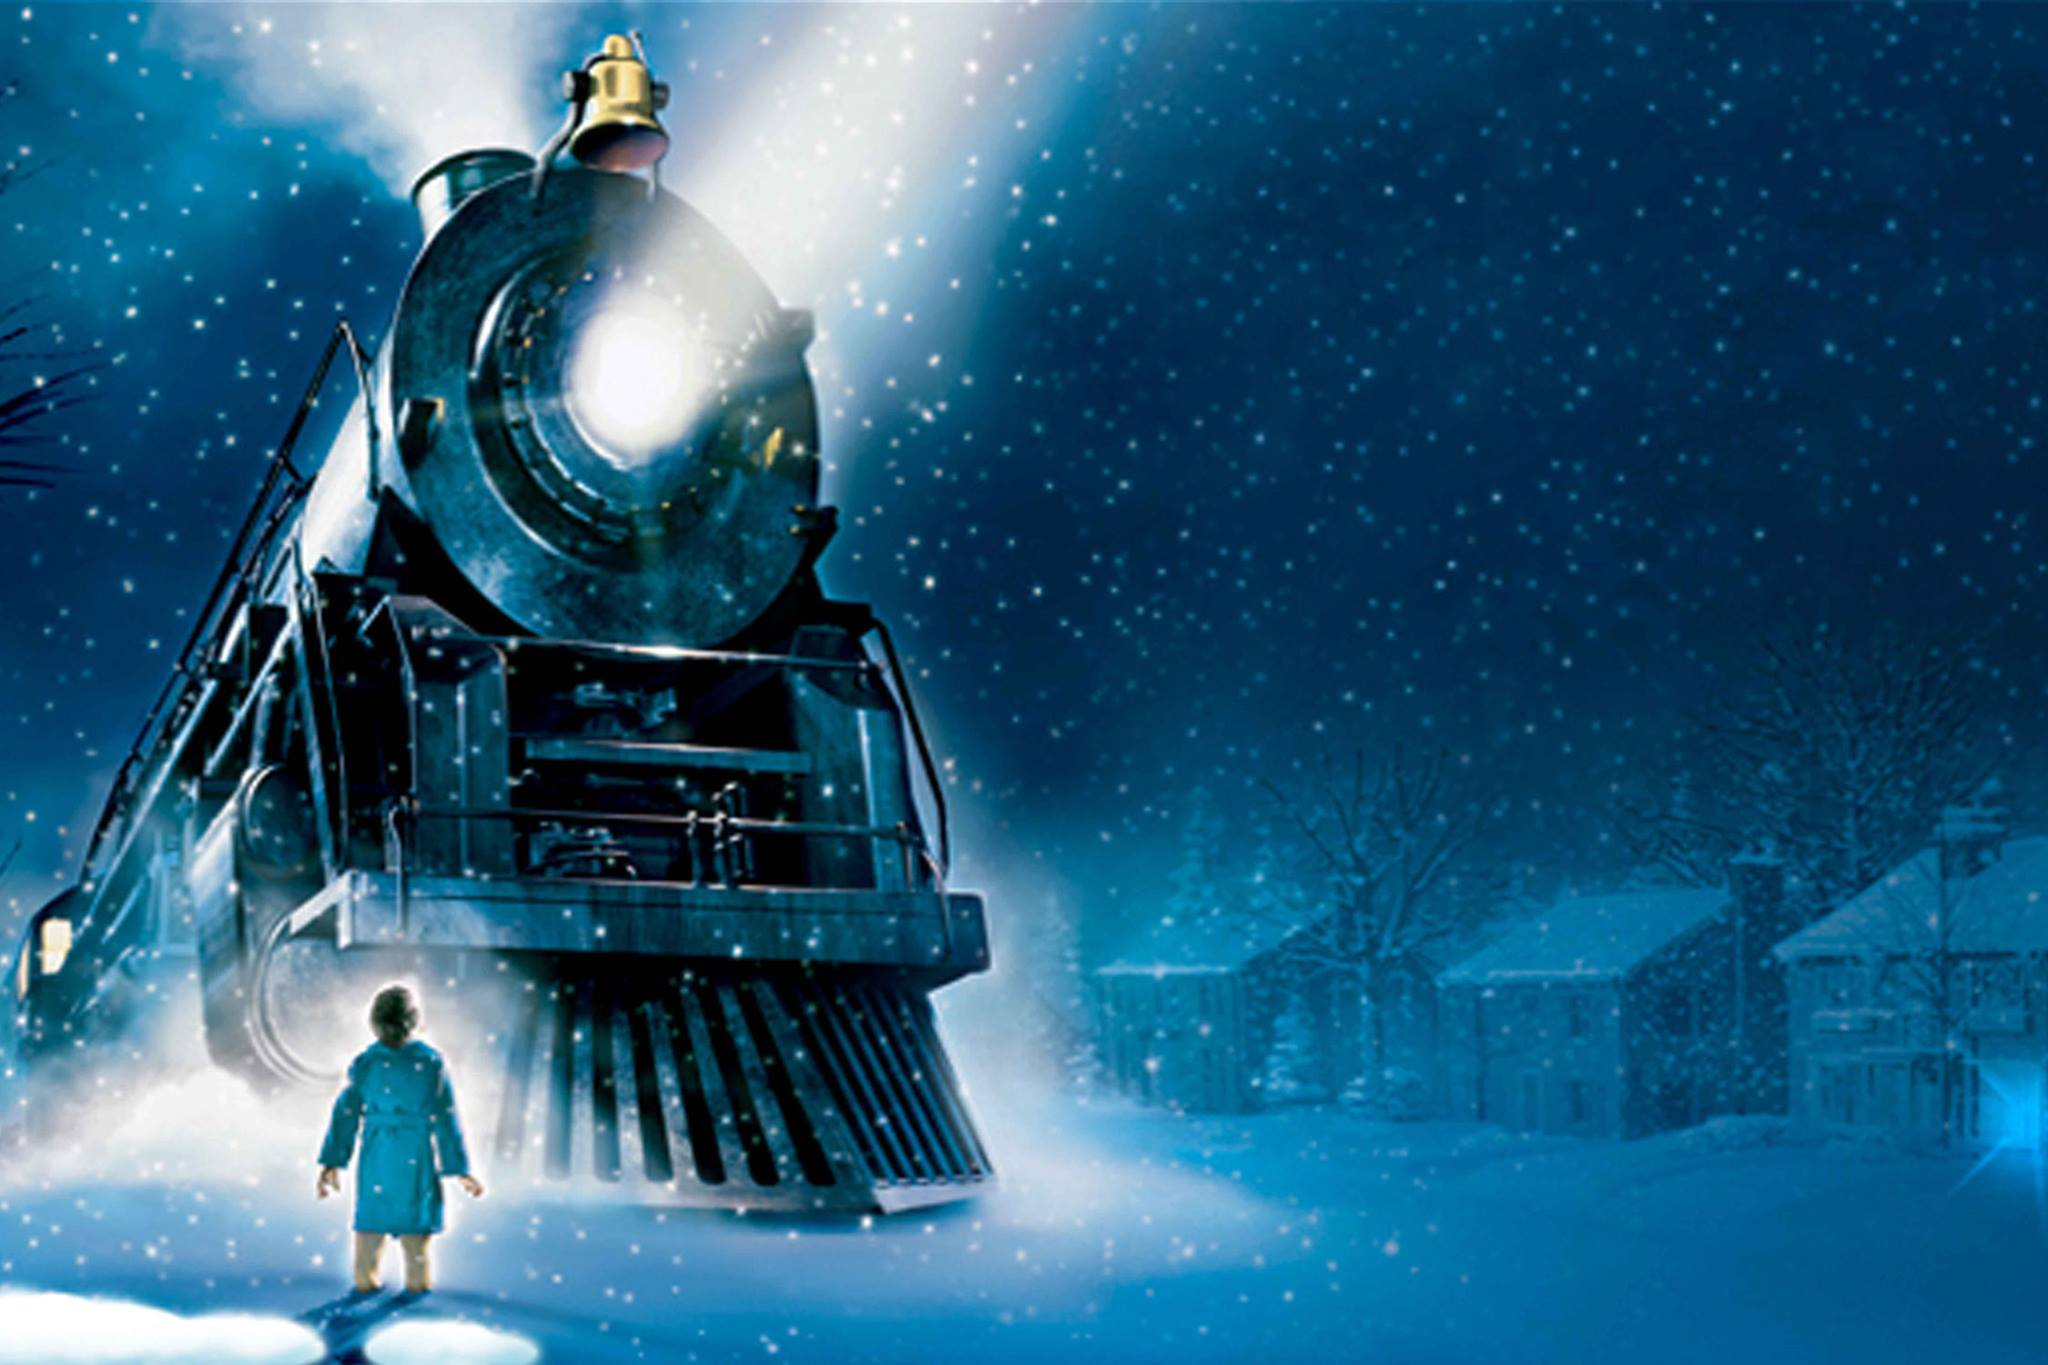 night on the polar express